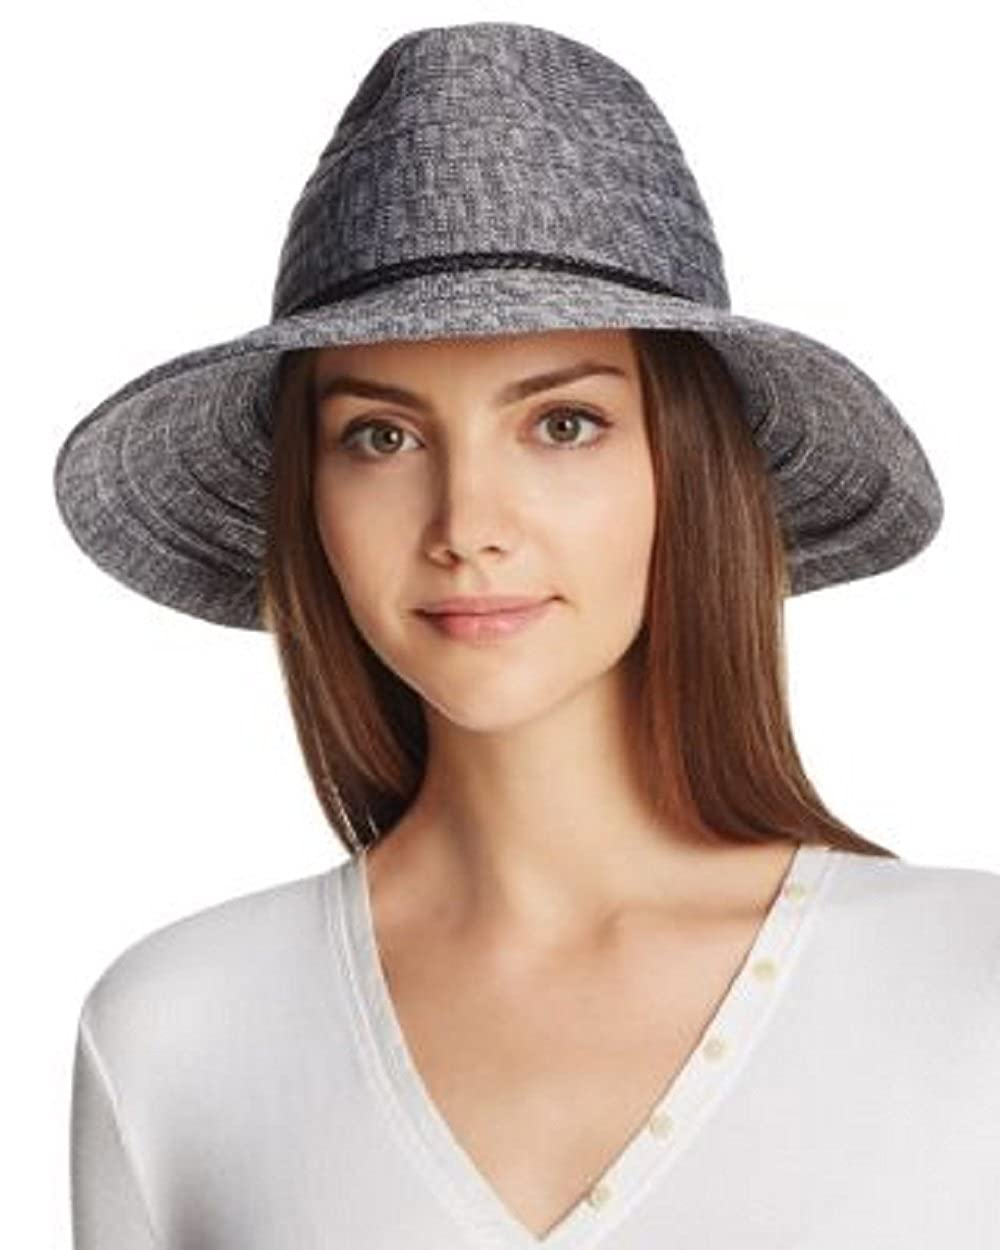 AUGUST HAT COMPANY All Around Knit Large Fedora